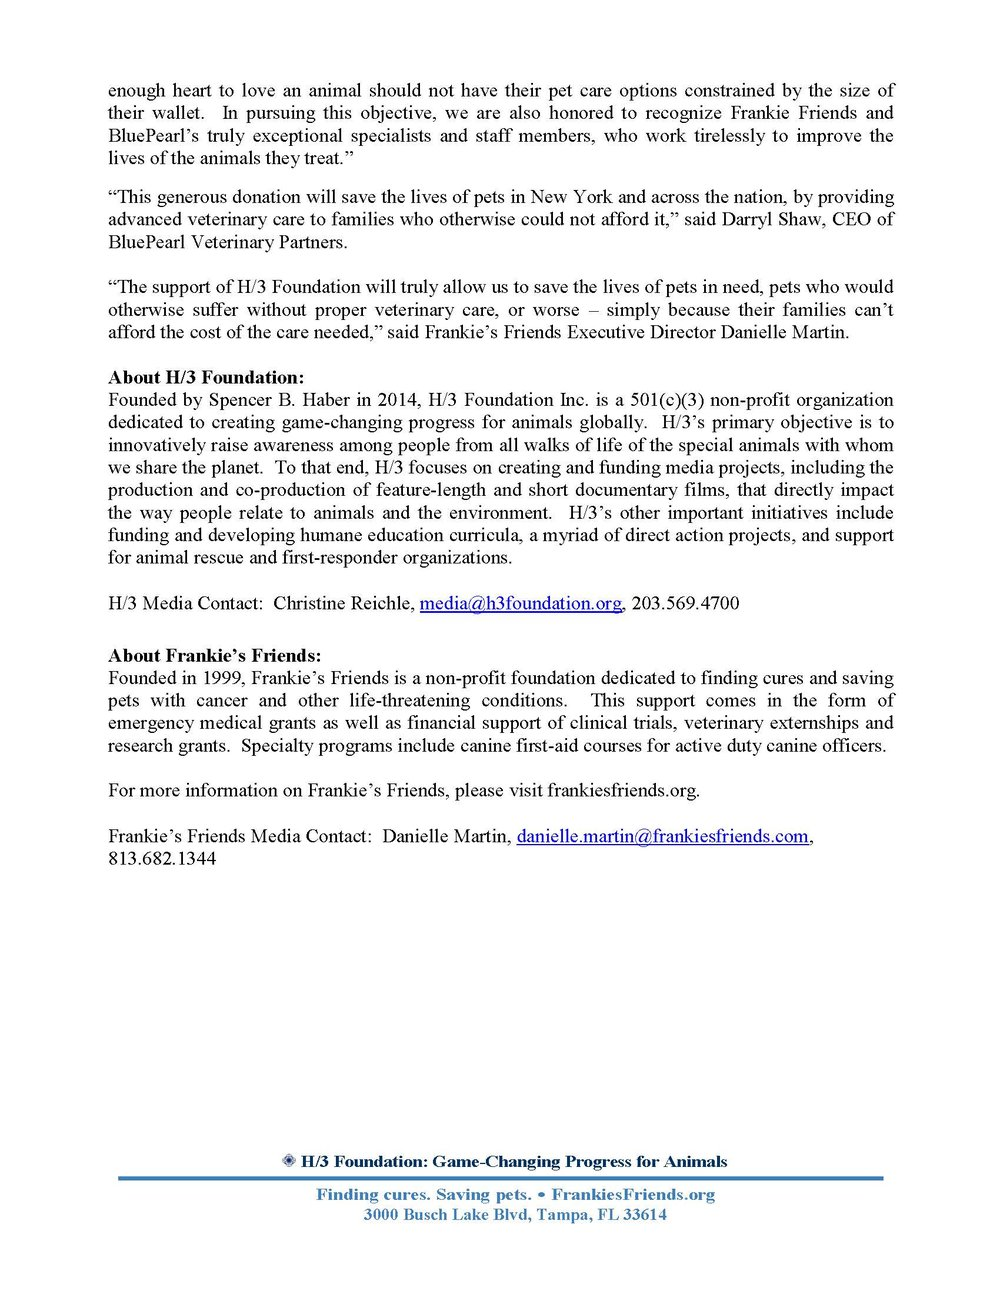 H3 FF donation Press Release_Page_2.jpg